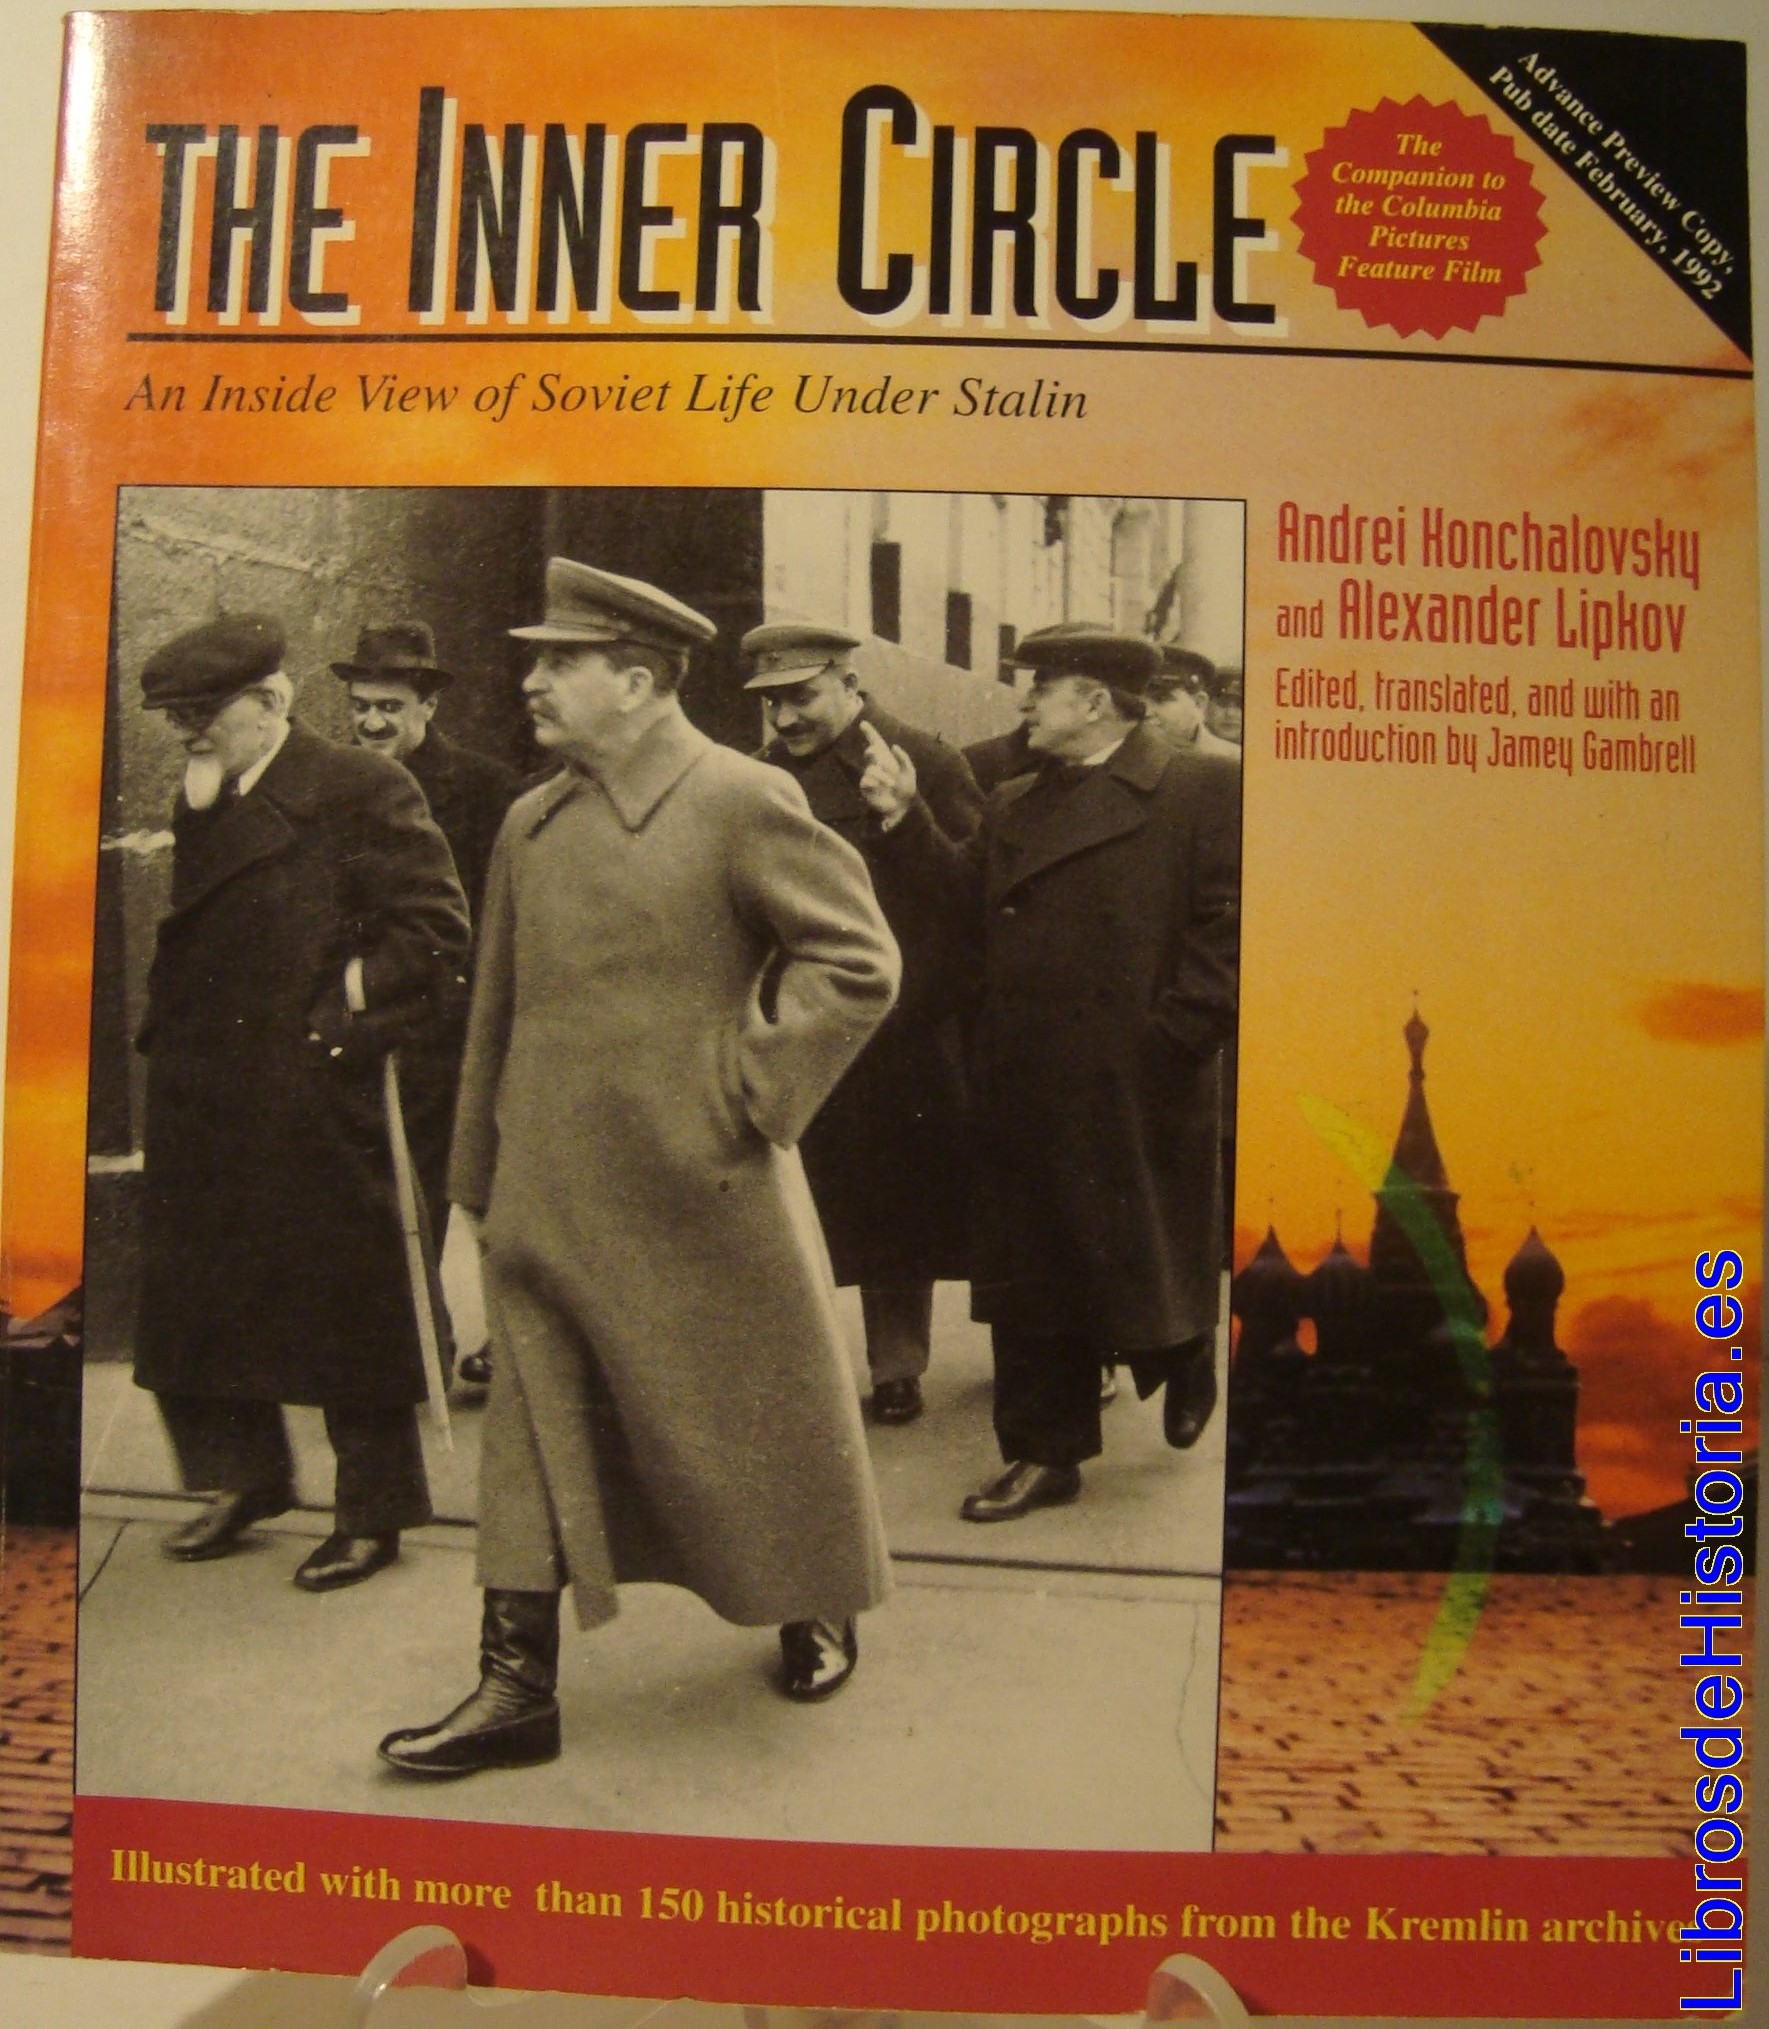 Why Was the Nazi-Soviet Pact Signed in August 1939?